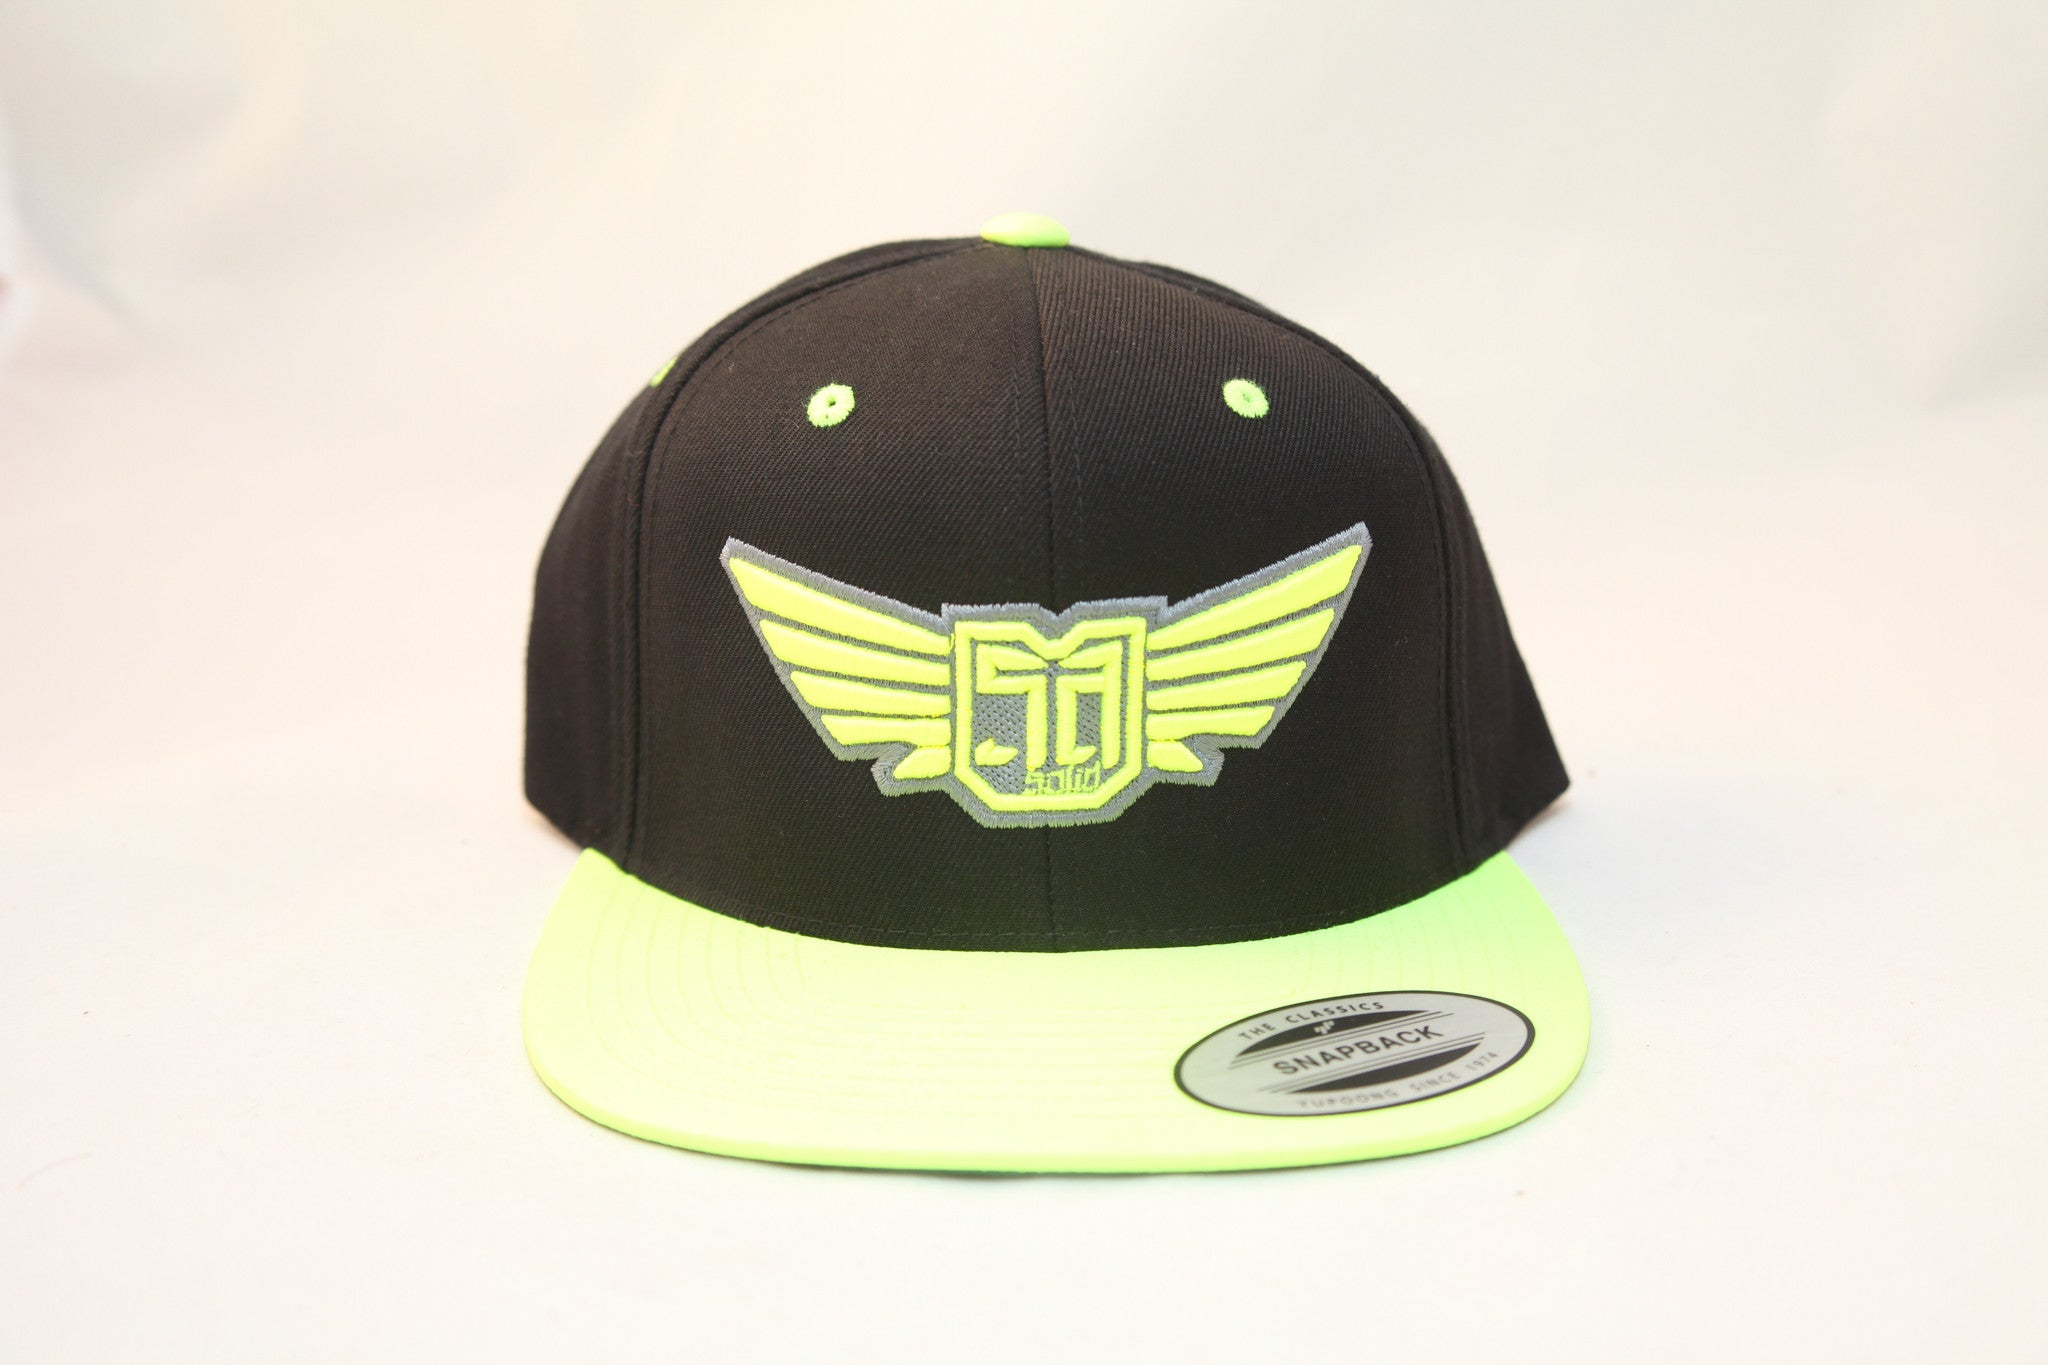 AV8 - FLEXFIT SNAP BACK HAT - BLACK / GREEN - GRN / SLV LOGO